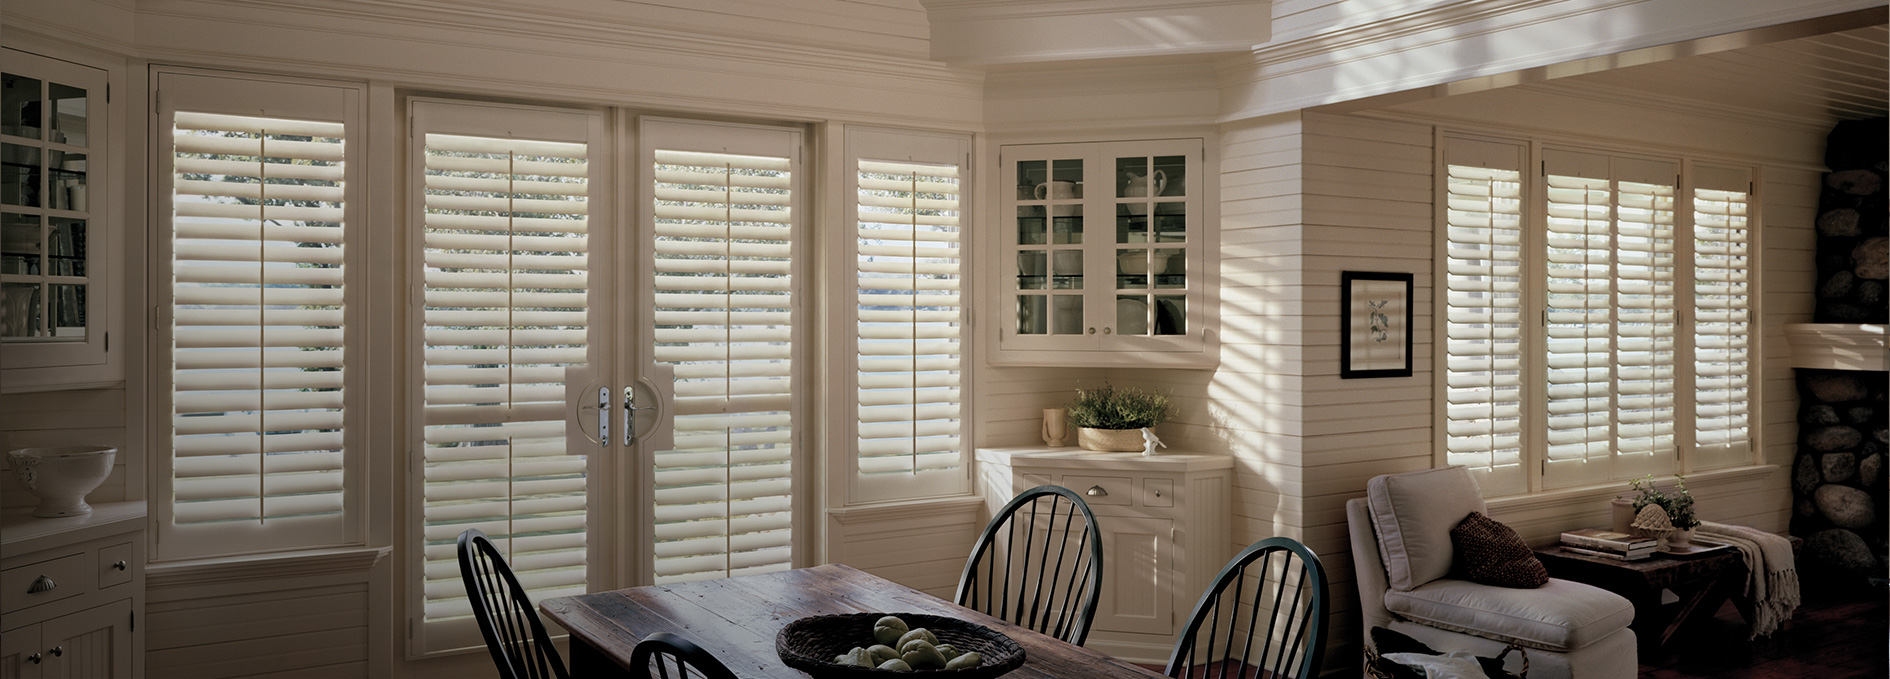 French doors window treatments for patio doors today 39 s for Window design solutions